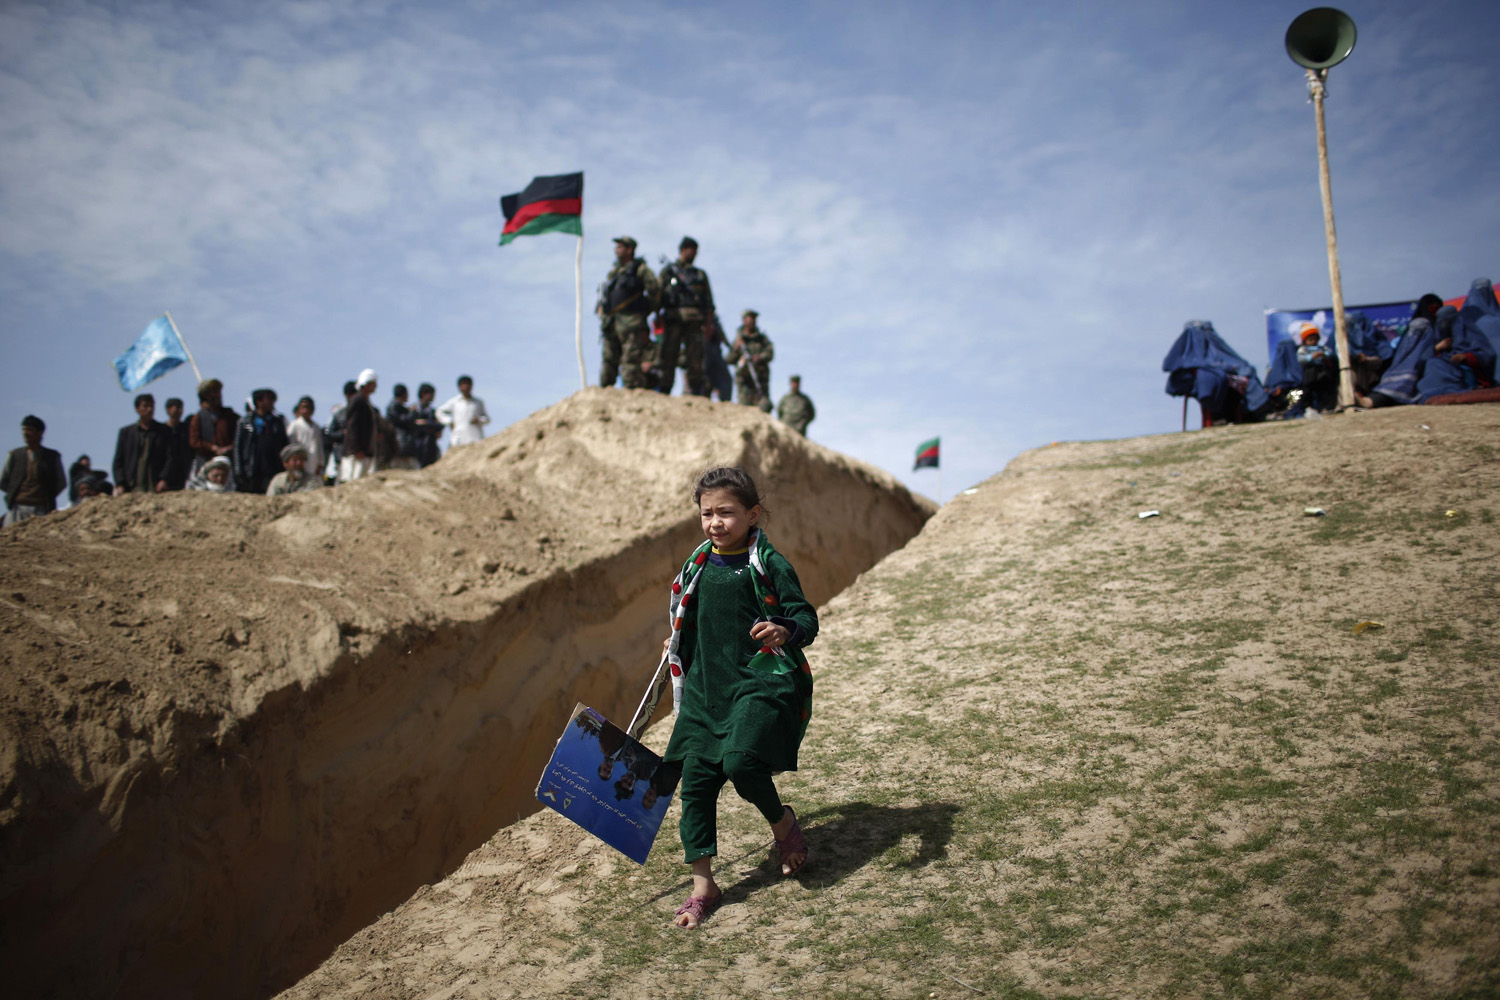 Mar. 19, 2014. A girl runs during an election campaign by Afghan presidential candidate Ashraf Ghani Ahmadzai in Kunduz province, northern Afghanistan  The Afghan presidential elections will be held on April 5.